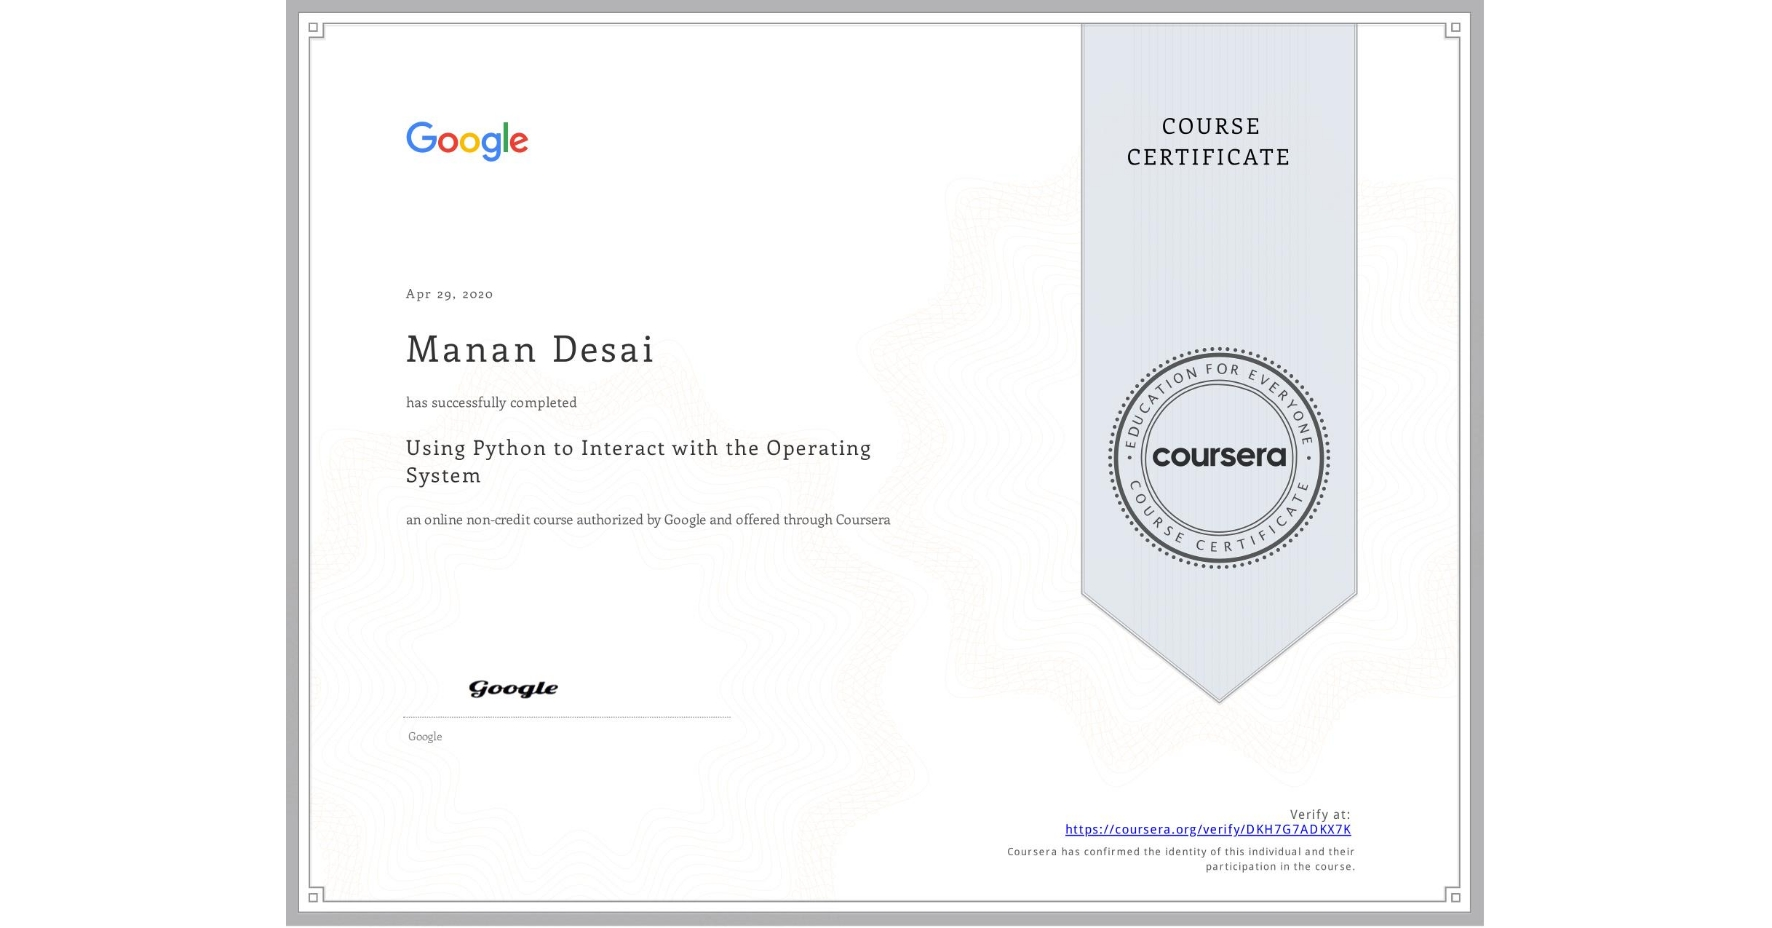 View certificate for Manan Desai, Using Python to Interact with the Operating System, an online non-credit course authorized by Google and offered through Coursera